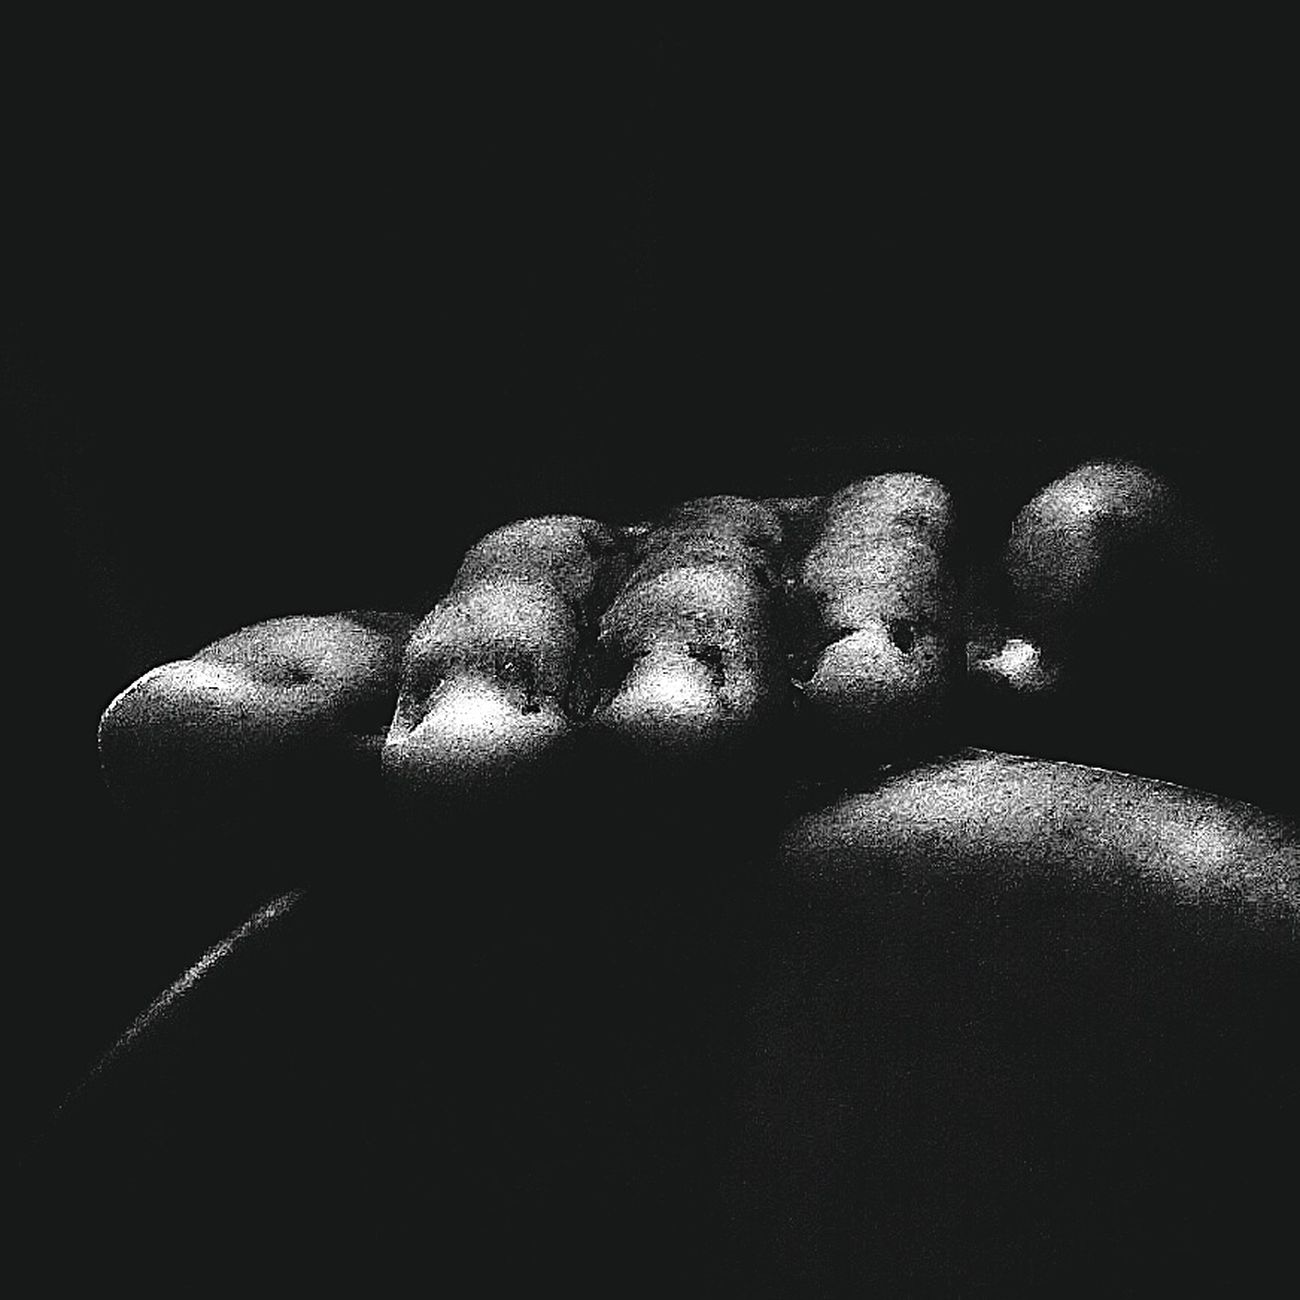 Black&white Human Body Part Black Background Day Cultures Follower Roma Rom Picofday Fotooftheday Indoors  Religion Spirituality